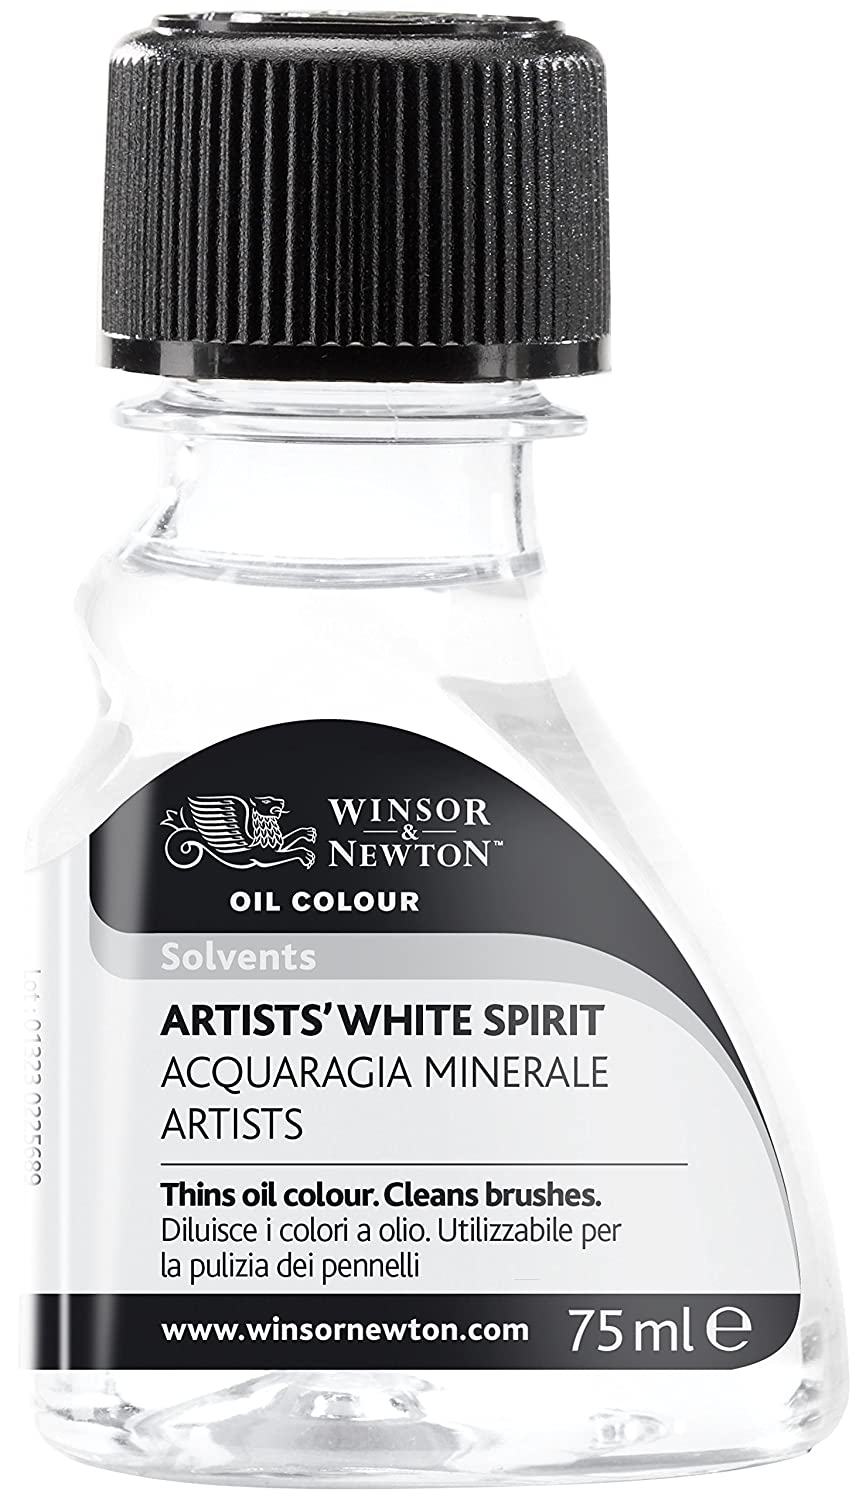 Winsor & Newton Artists' White Spirits, 75ml e lawrence internet commerce – digital models for business